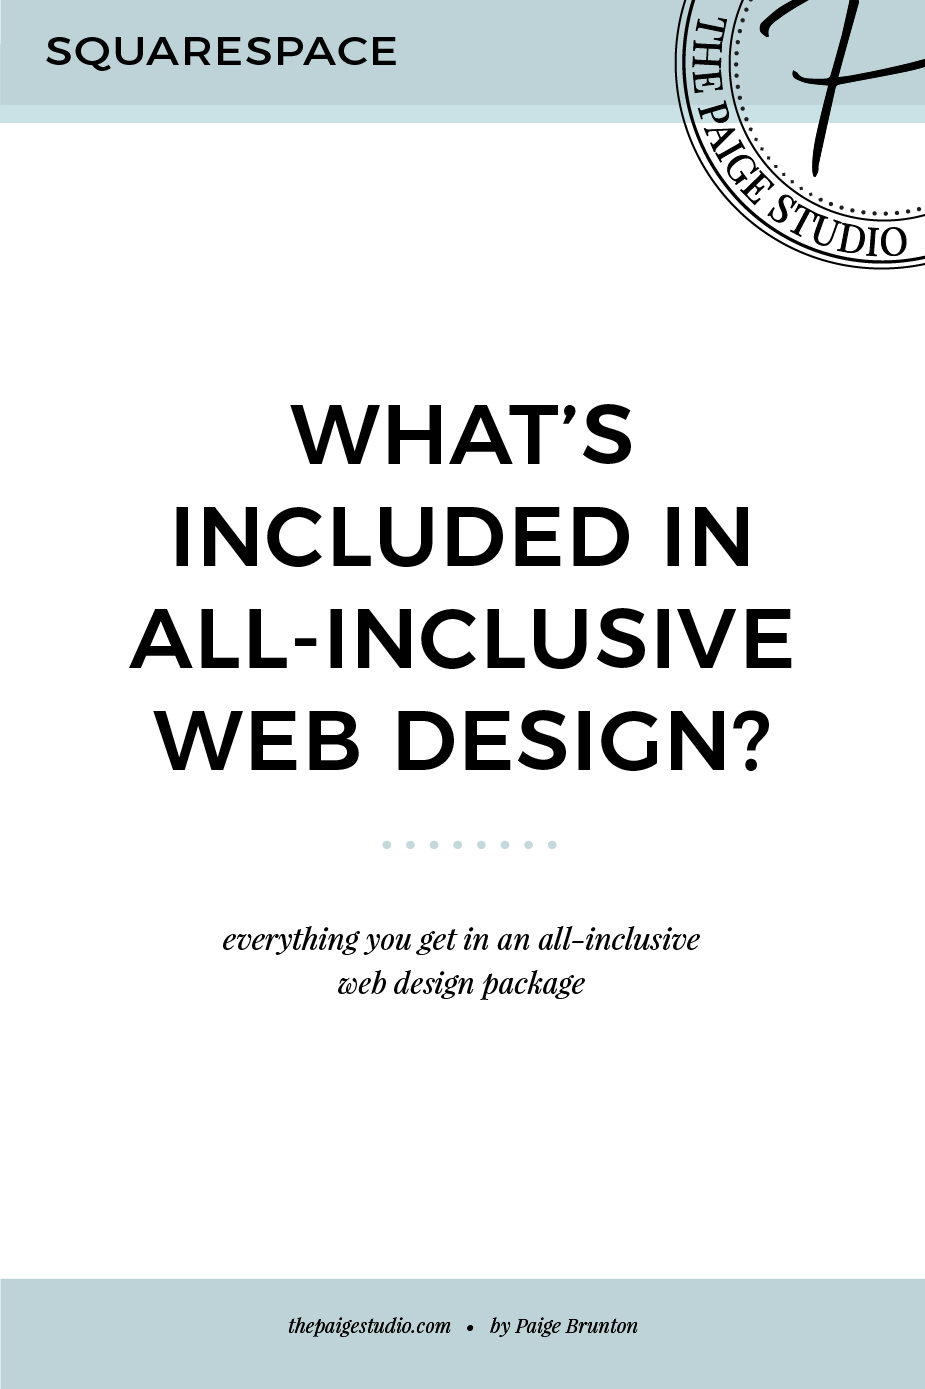 Whats Included In All Inclusive Squarespace Web Design Packages